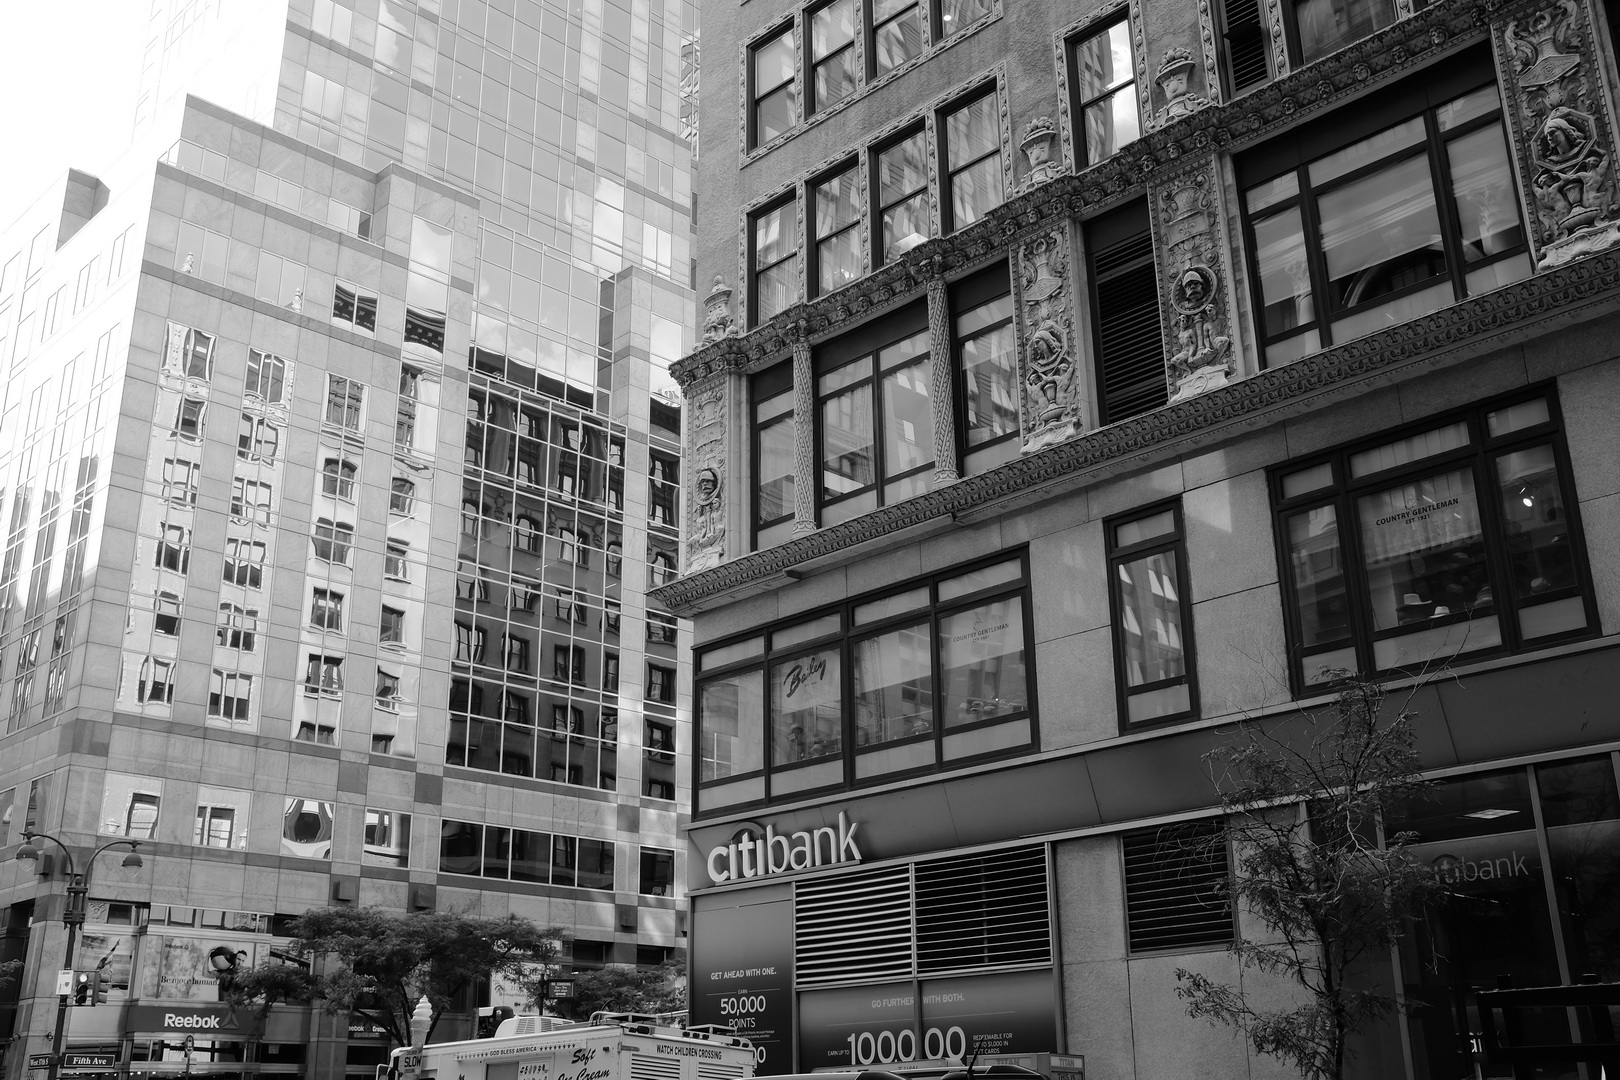 New York City architecture with monochrome